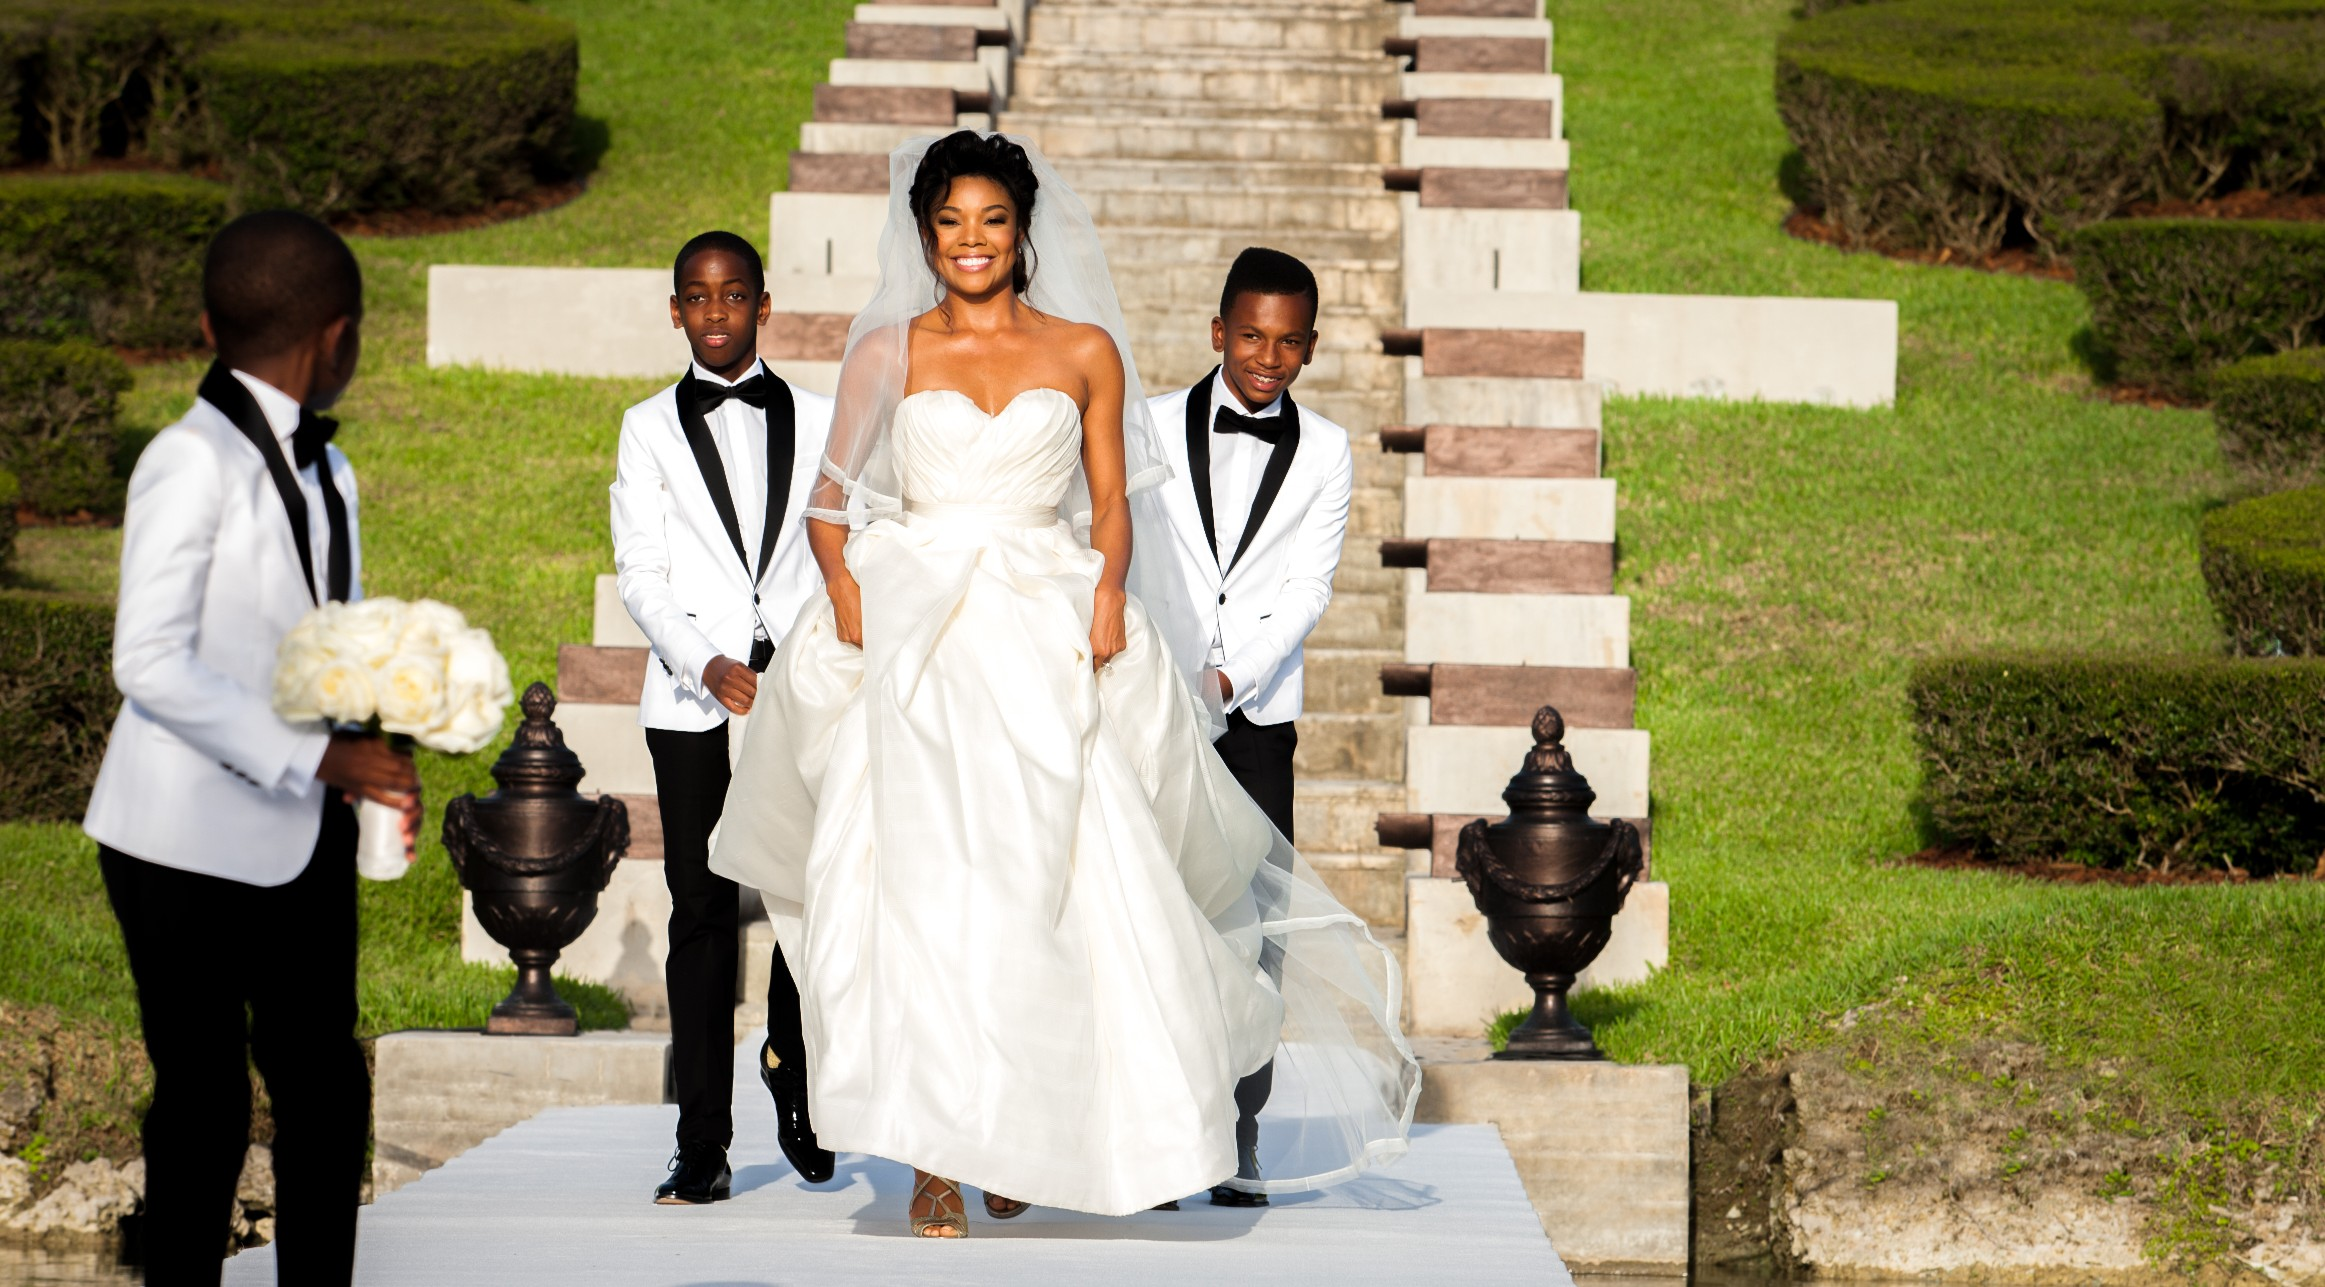 gabrielle union wedding